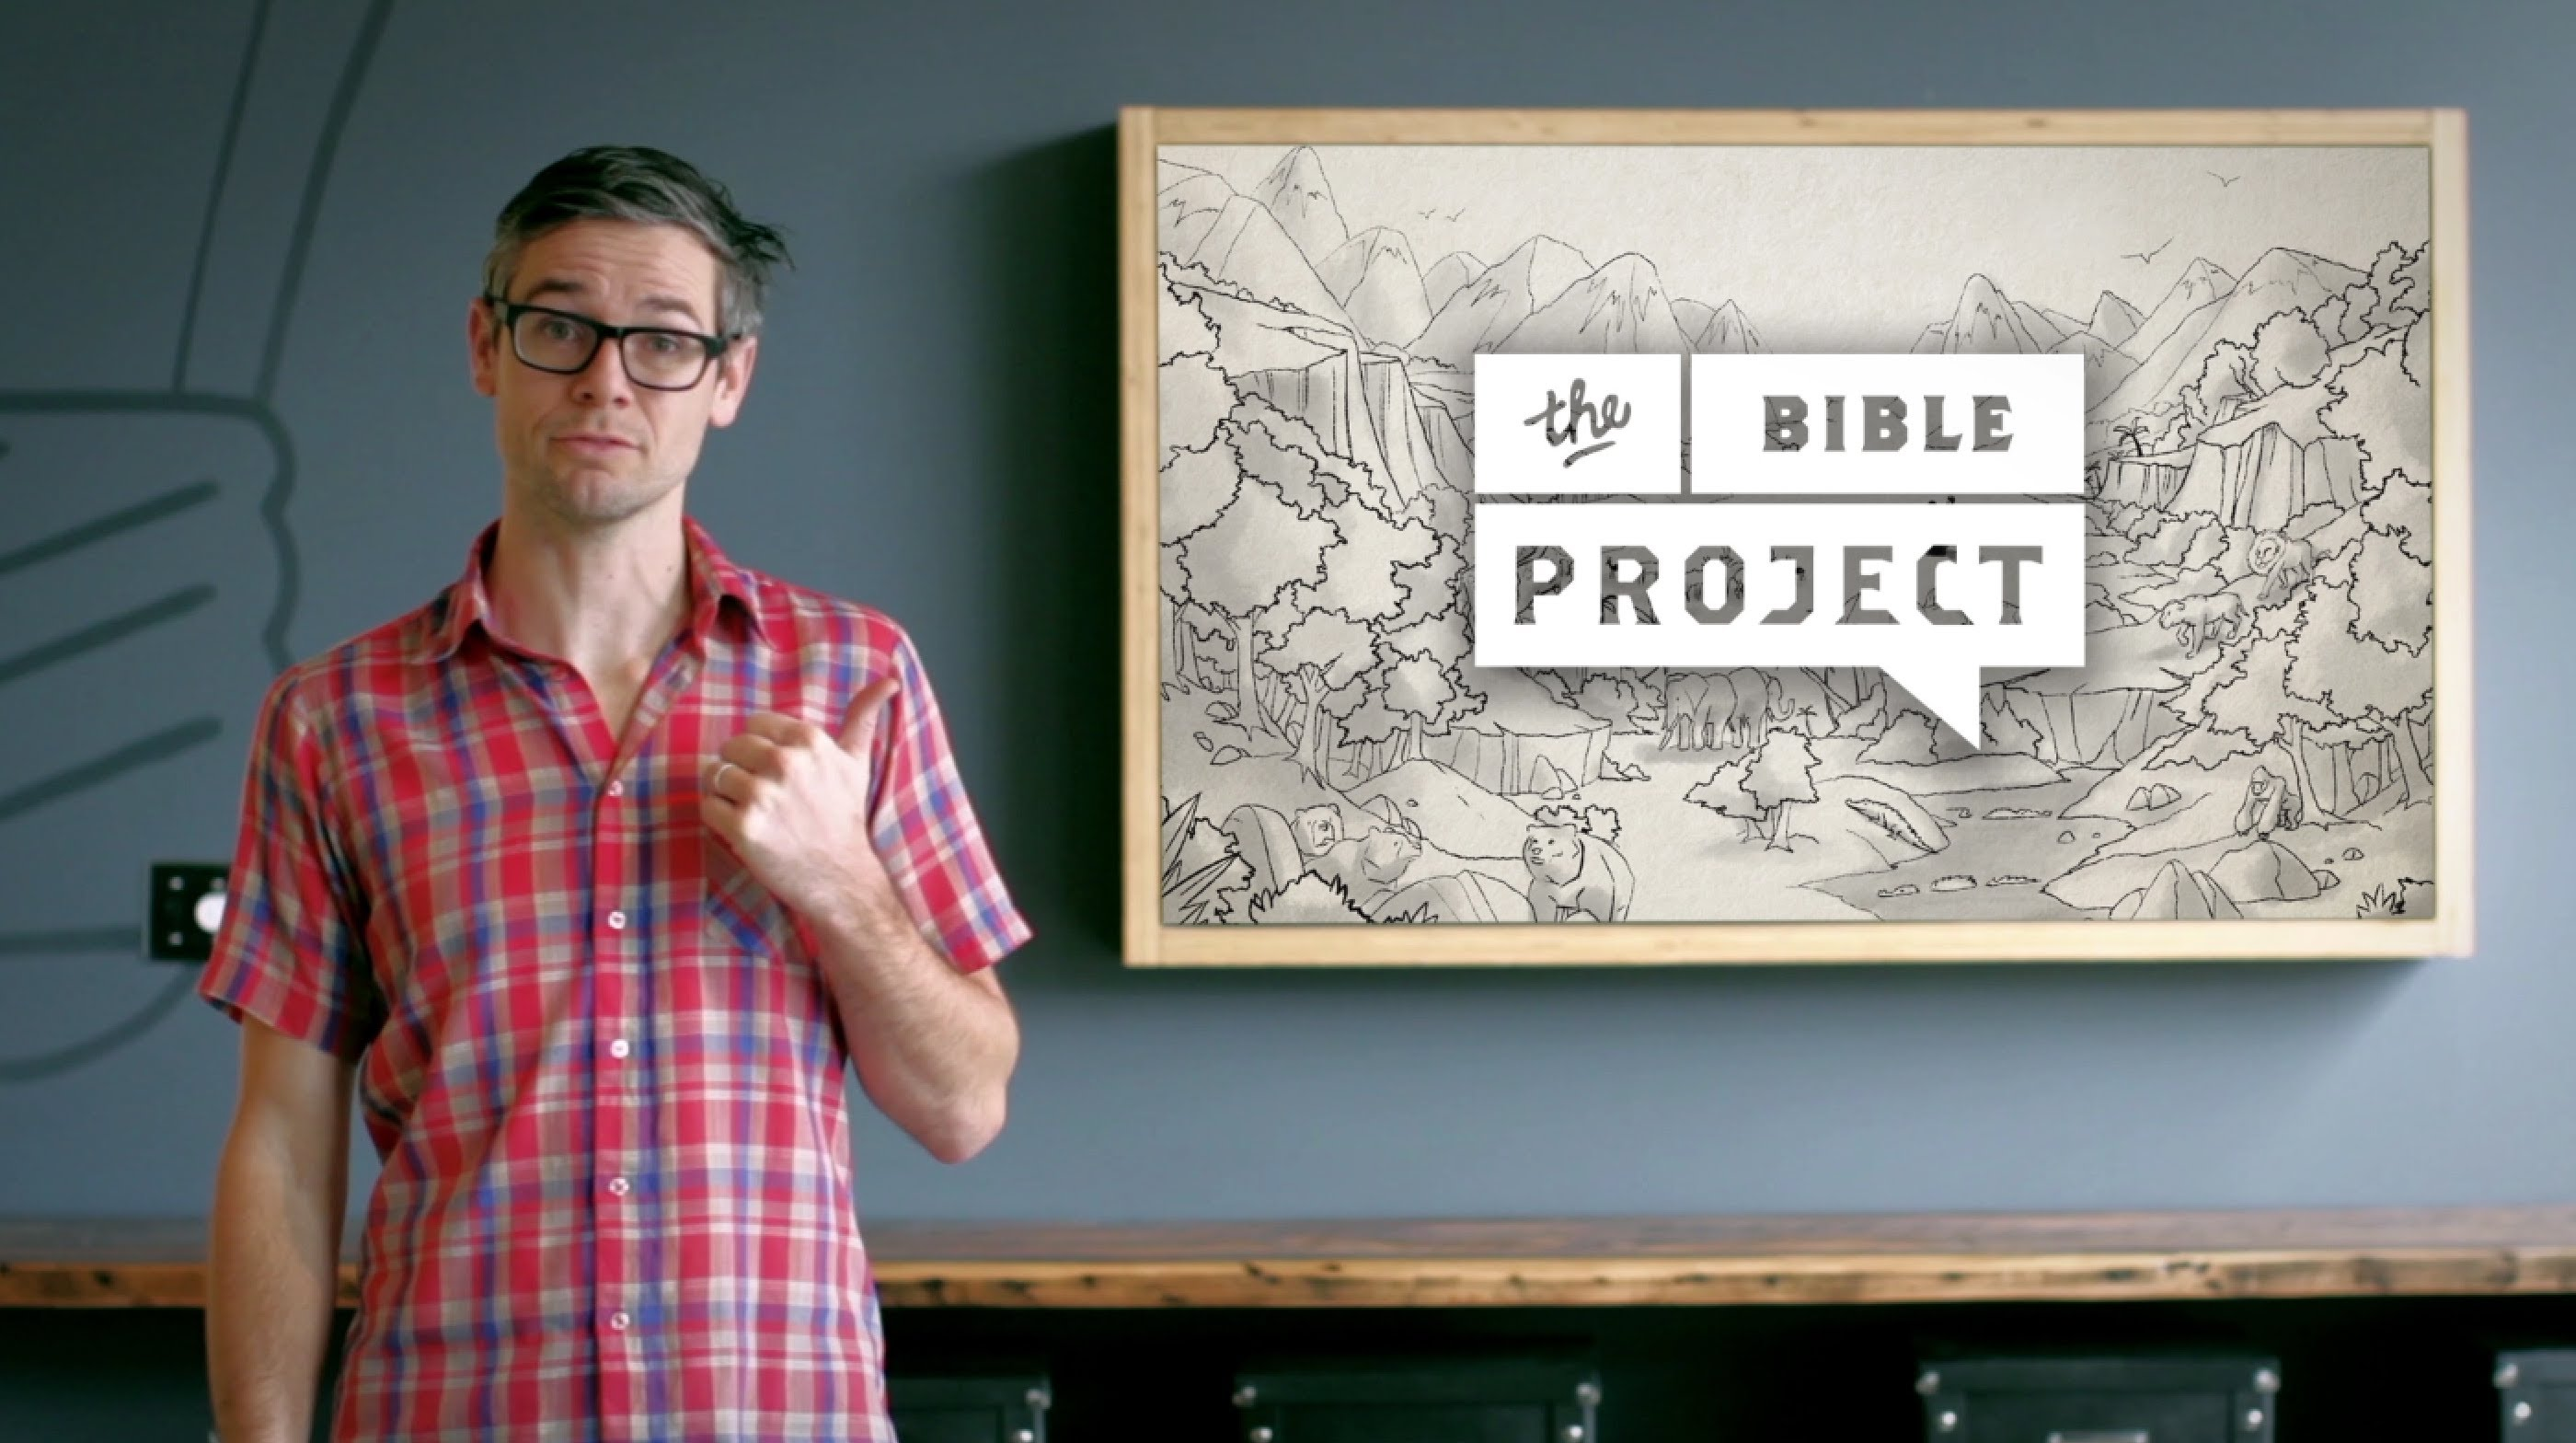 bible project The bible project support native pastors worldwide reaching a culture from within bible focuses on providing training and funding to the most effective church planters in any nation: national pastors.